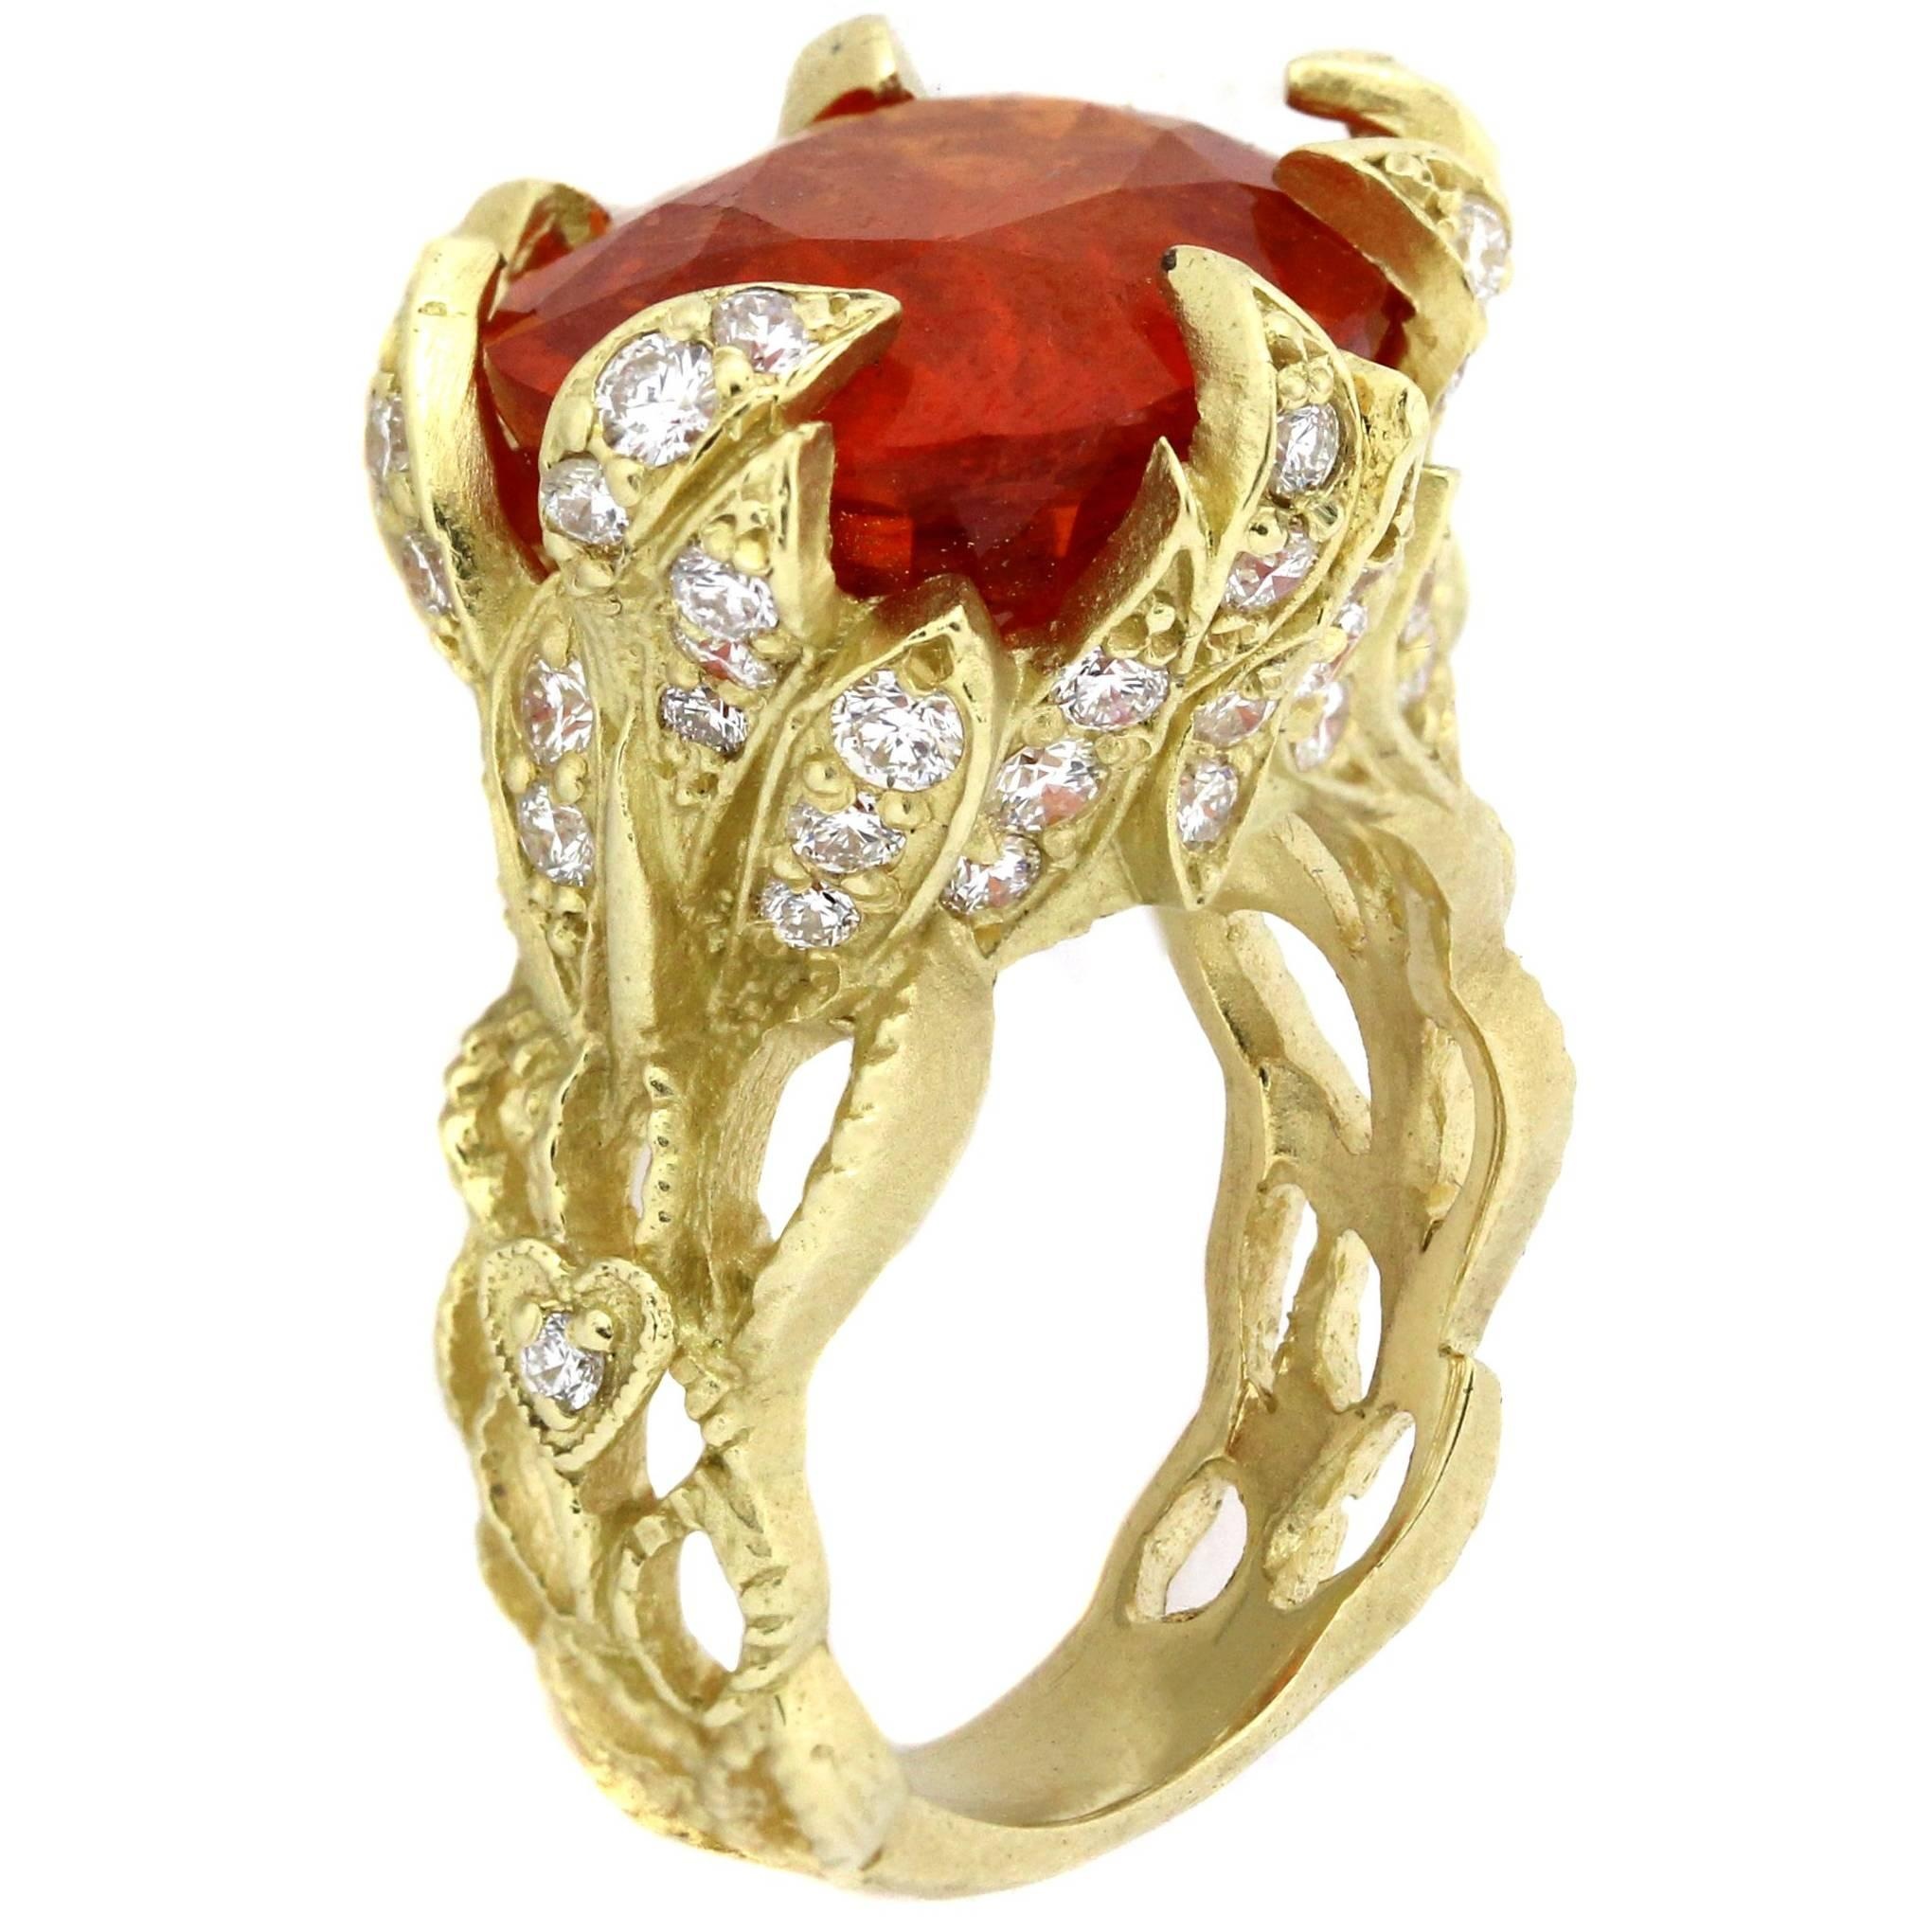 garnet virginia the in henry green and elizabeth ring from diamond products img tsavorite collection